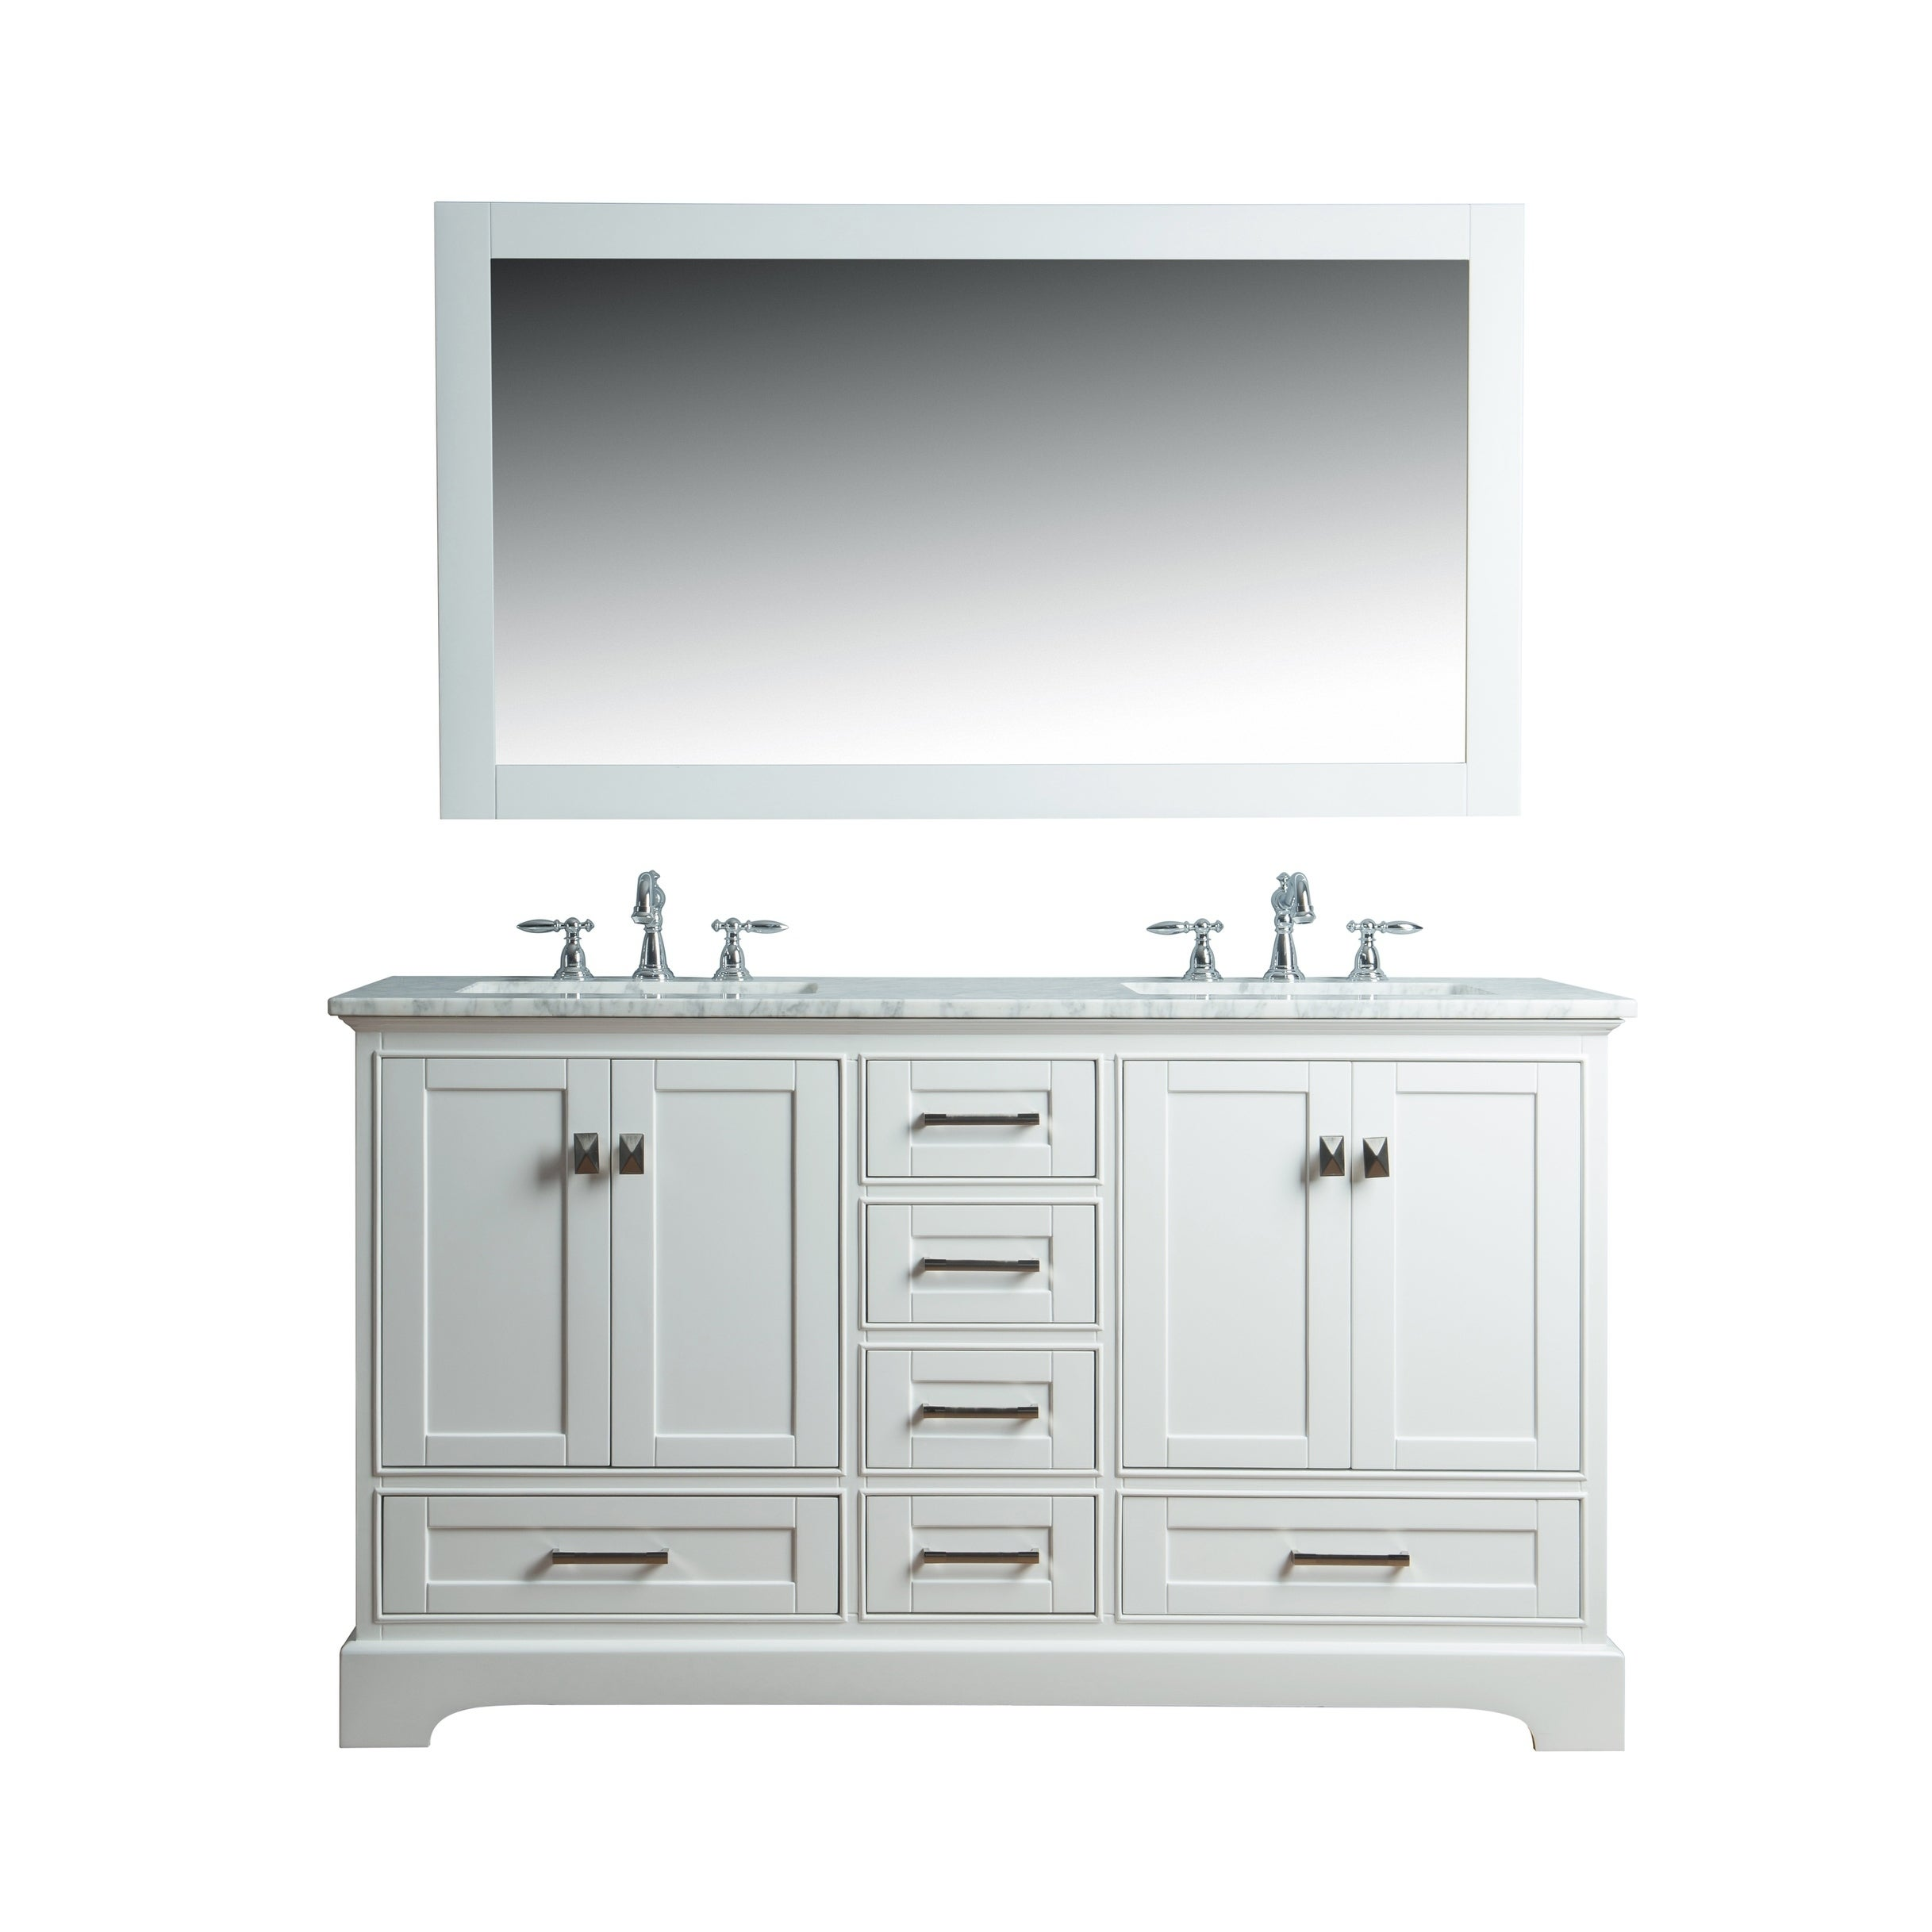 Shop Black Friday Deals On Stufurhome White 60 Inch Double Sink Bathroom Vanity Set With Mirror Overstock 10217328